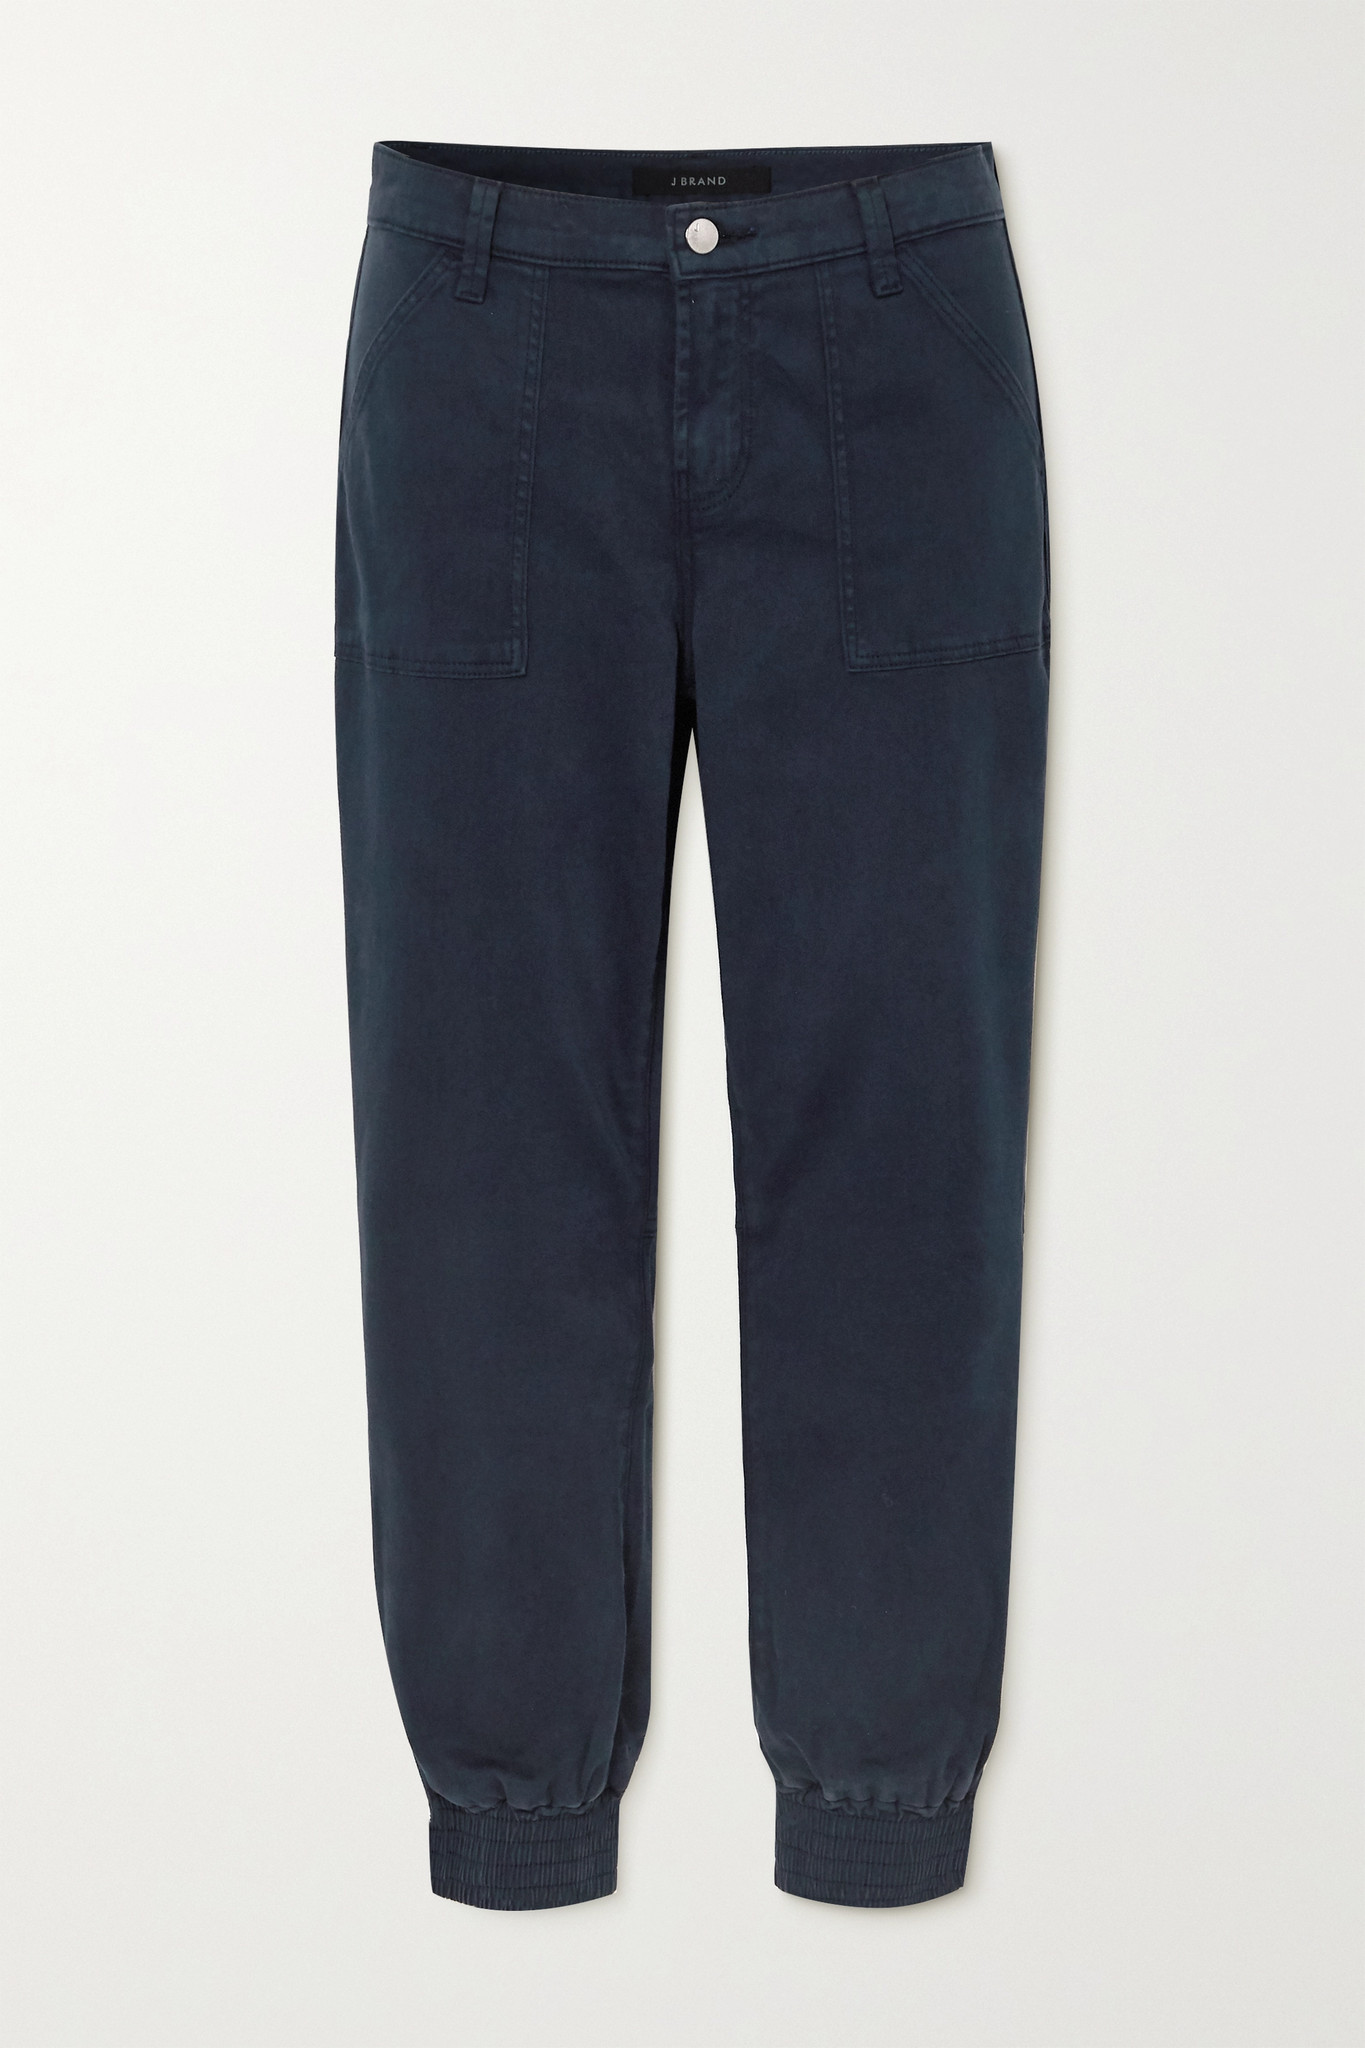 J BRAND - Arkin Cropped Cotton-blend Sateen Track Pants - Blue - 28